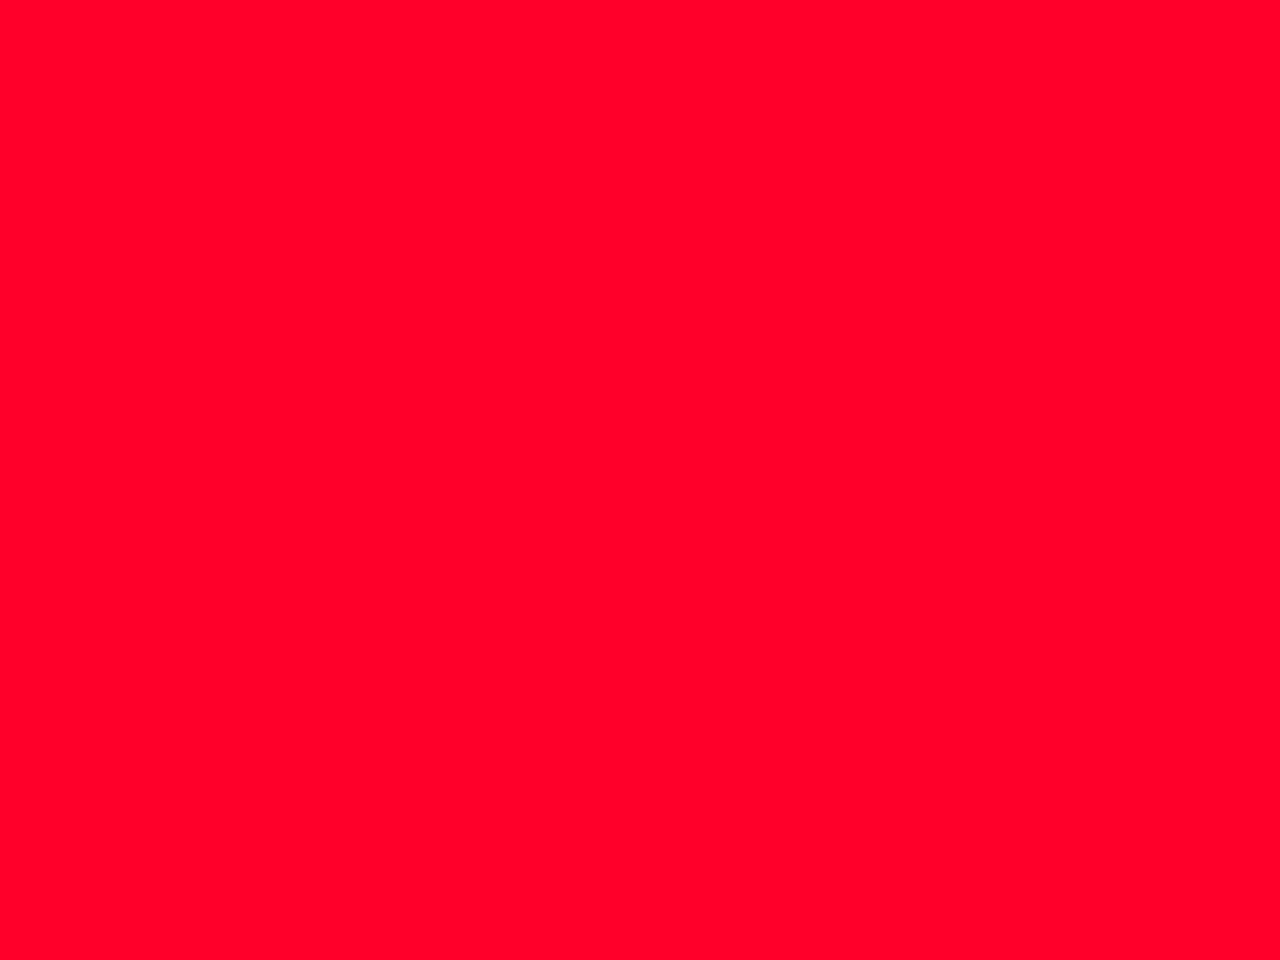 1280x960 Ruddy Solid Color Background